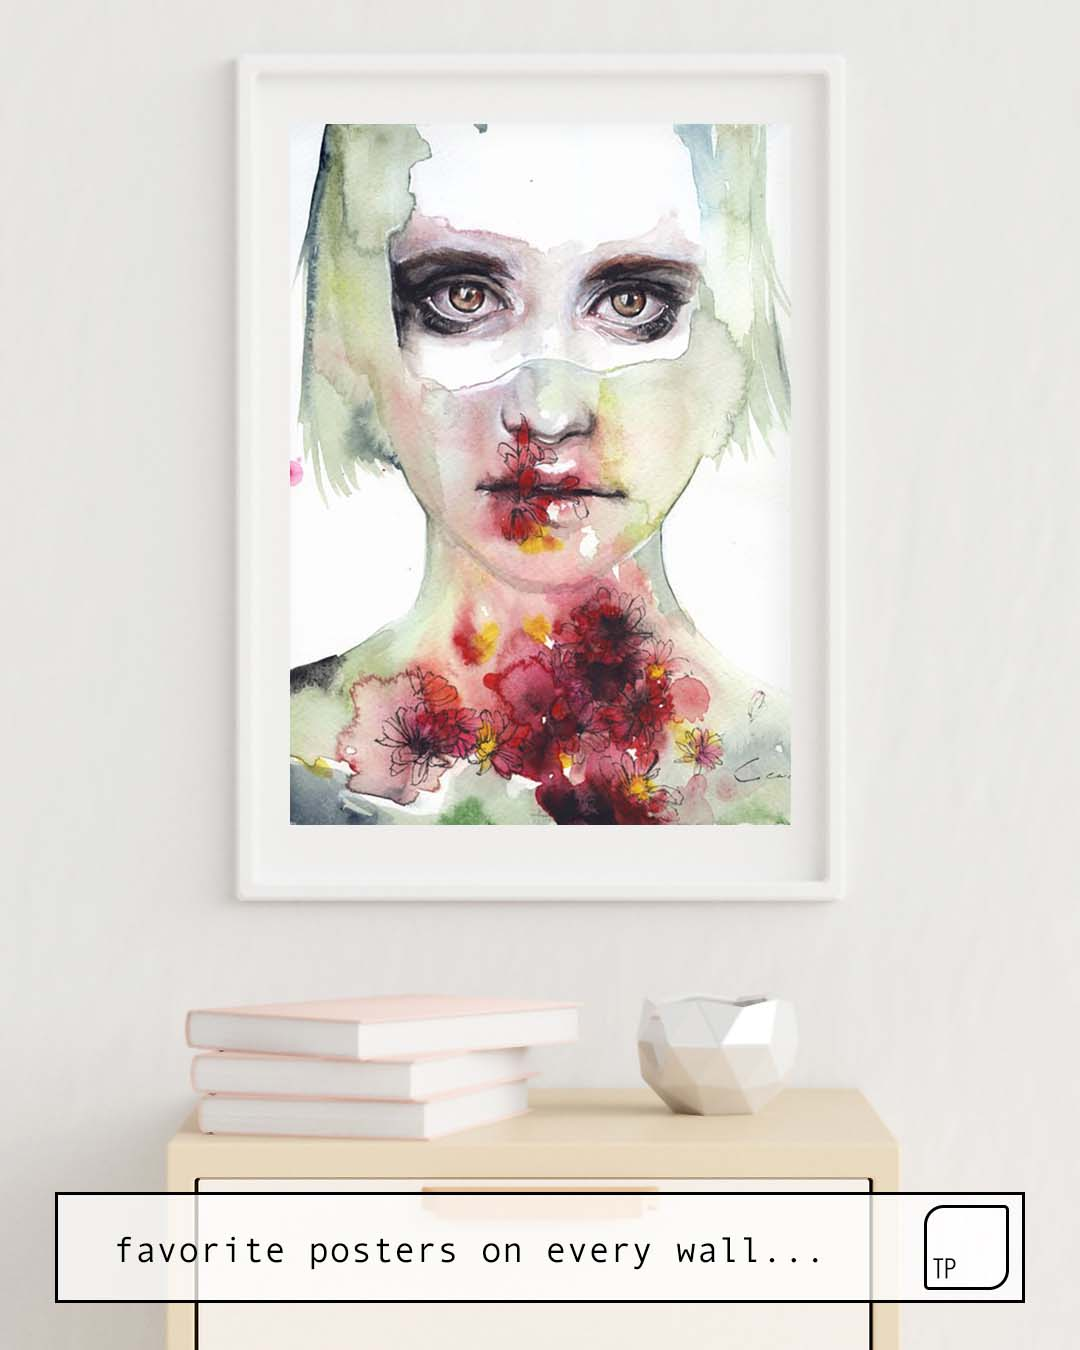 Poster | KEEPING INSIDE THIS WILD FLOWERING von Agnes Cecile